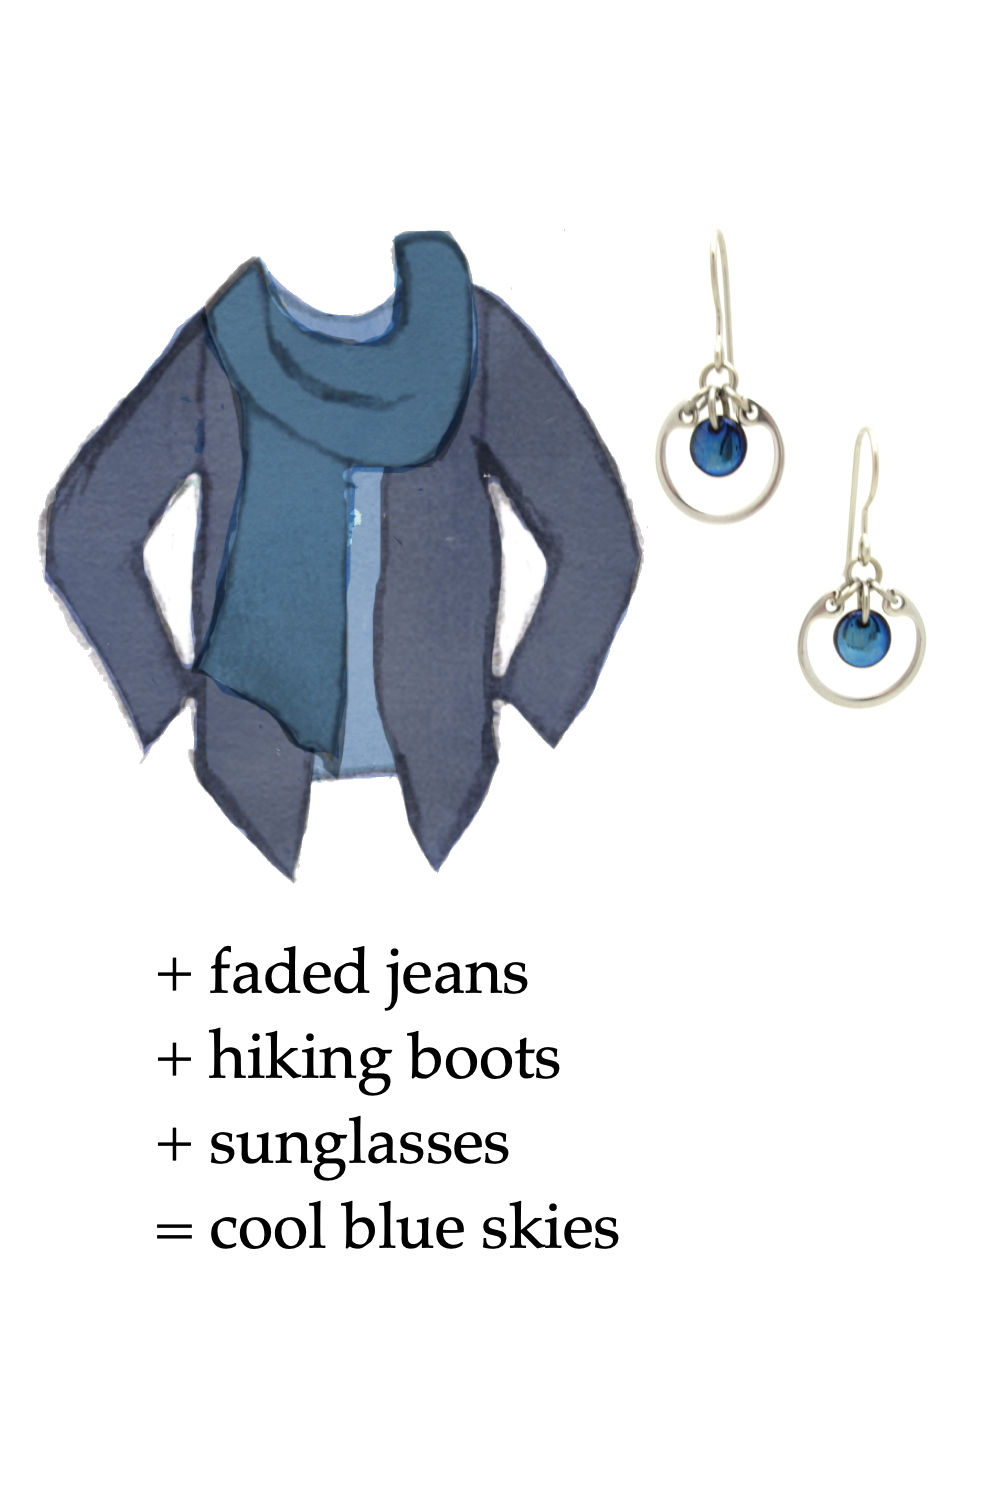 Style sketch of a casual outfit in shades of blue, with a pale blue tee, marine blue scarf, & dusty indigo cardigan, with Wraptillion's small modern circle earrings in navy. Text on image reads: + faded jeans + hiking boots + sunglasses = cool blue skies